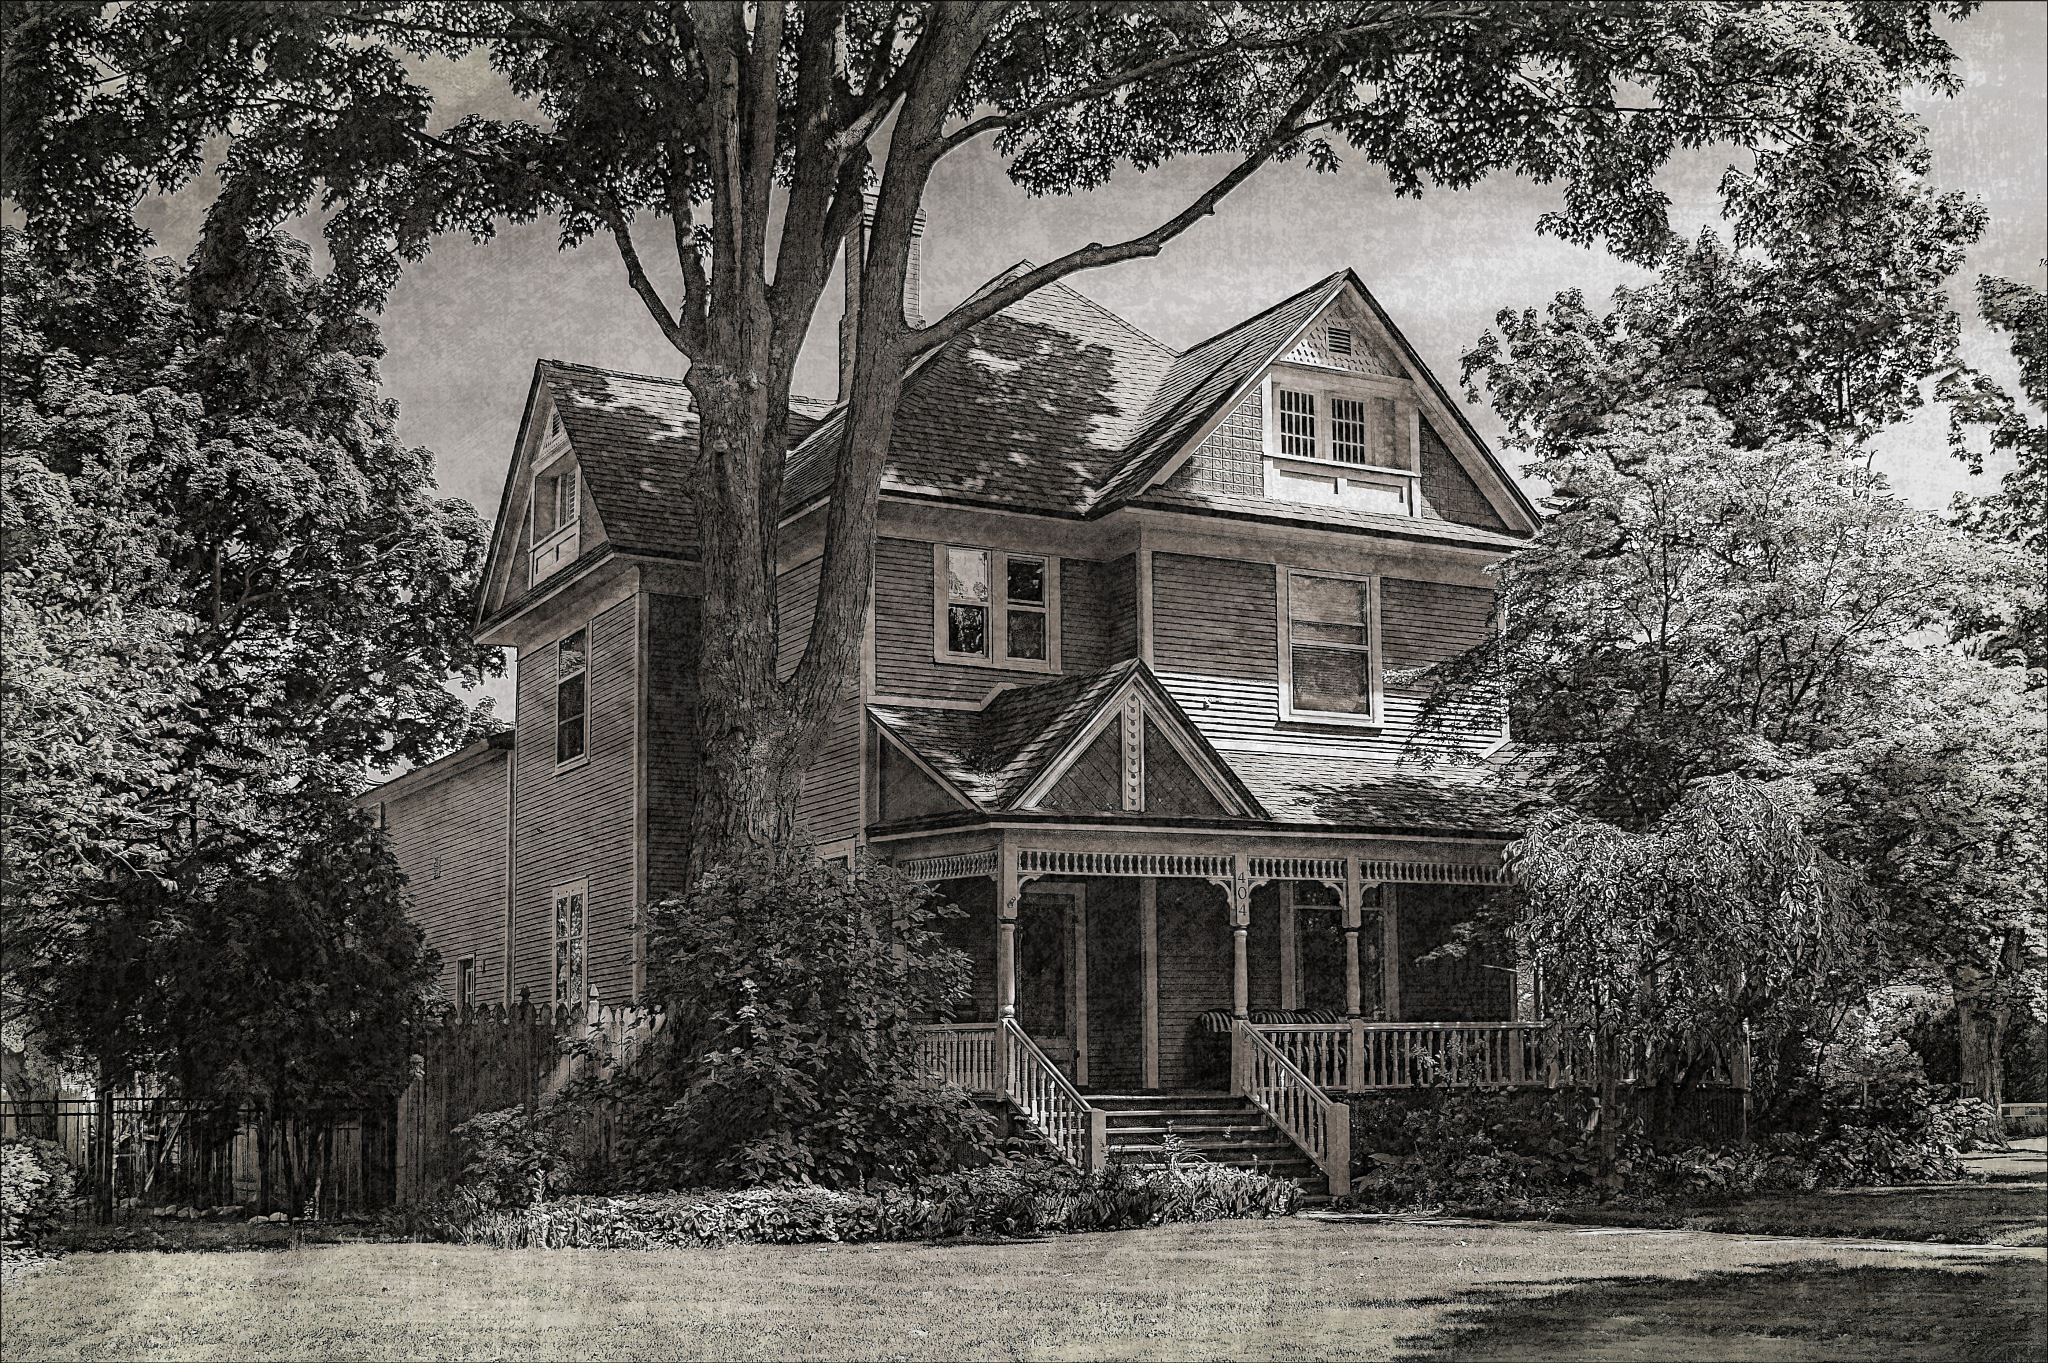 8th Street Victorian by Bob Yankle